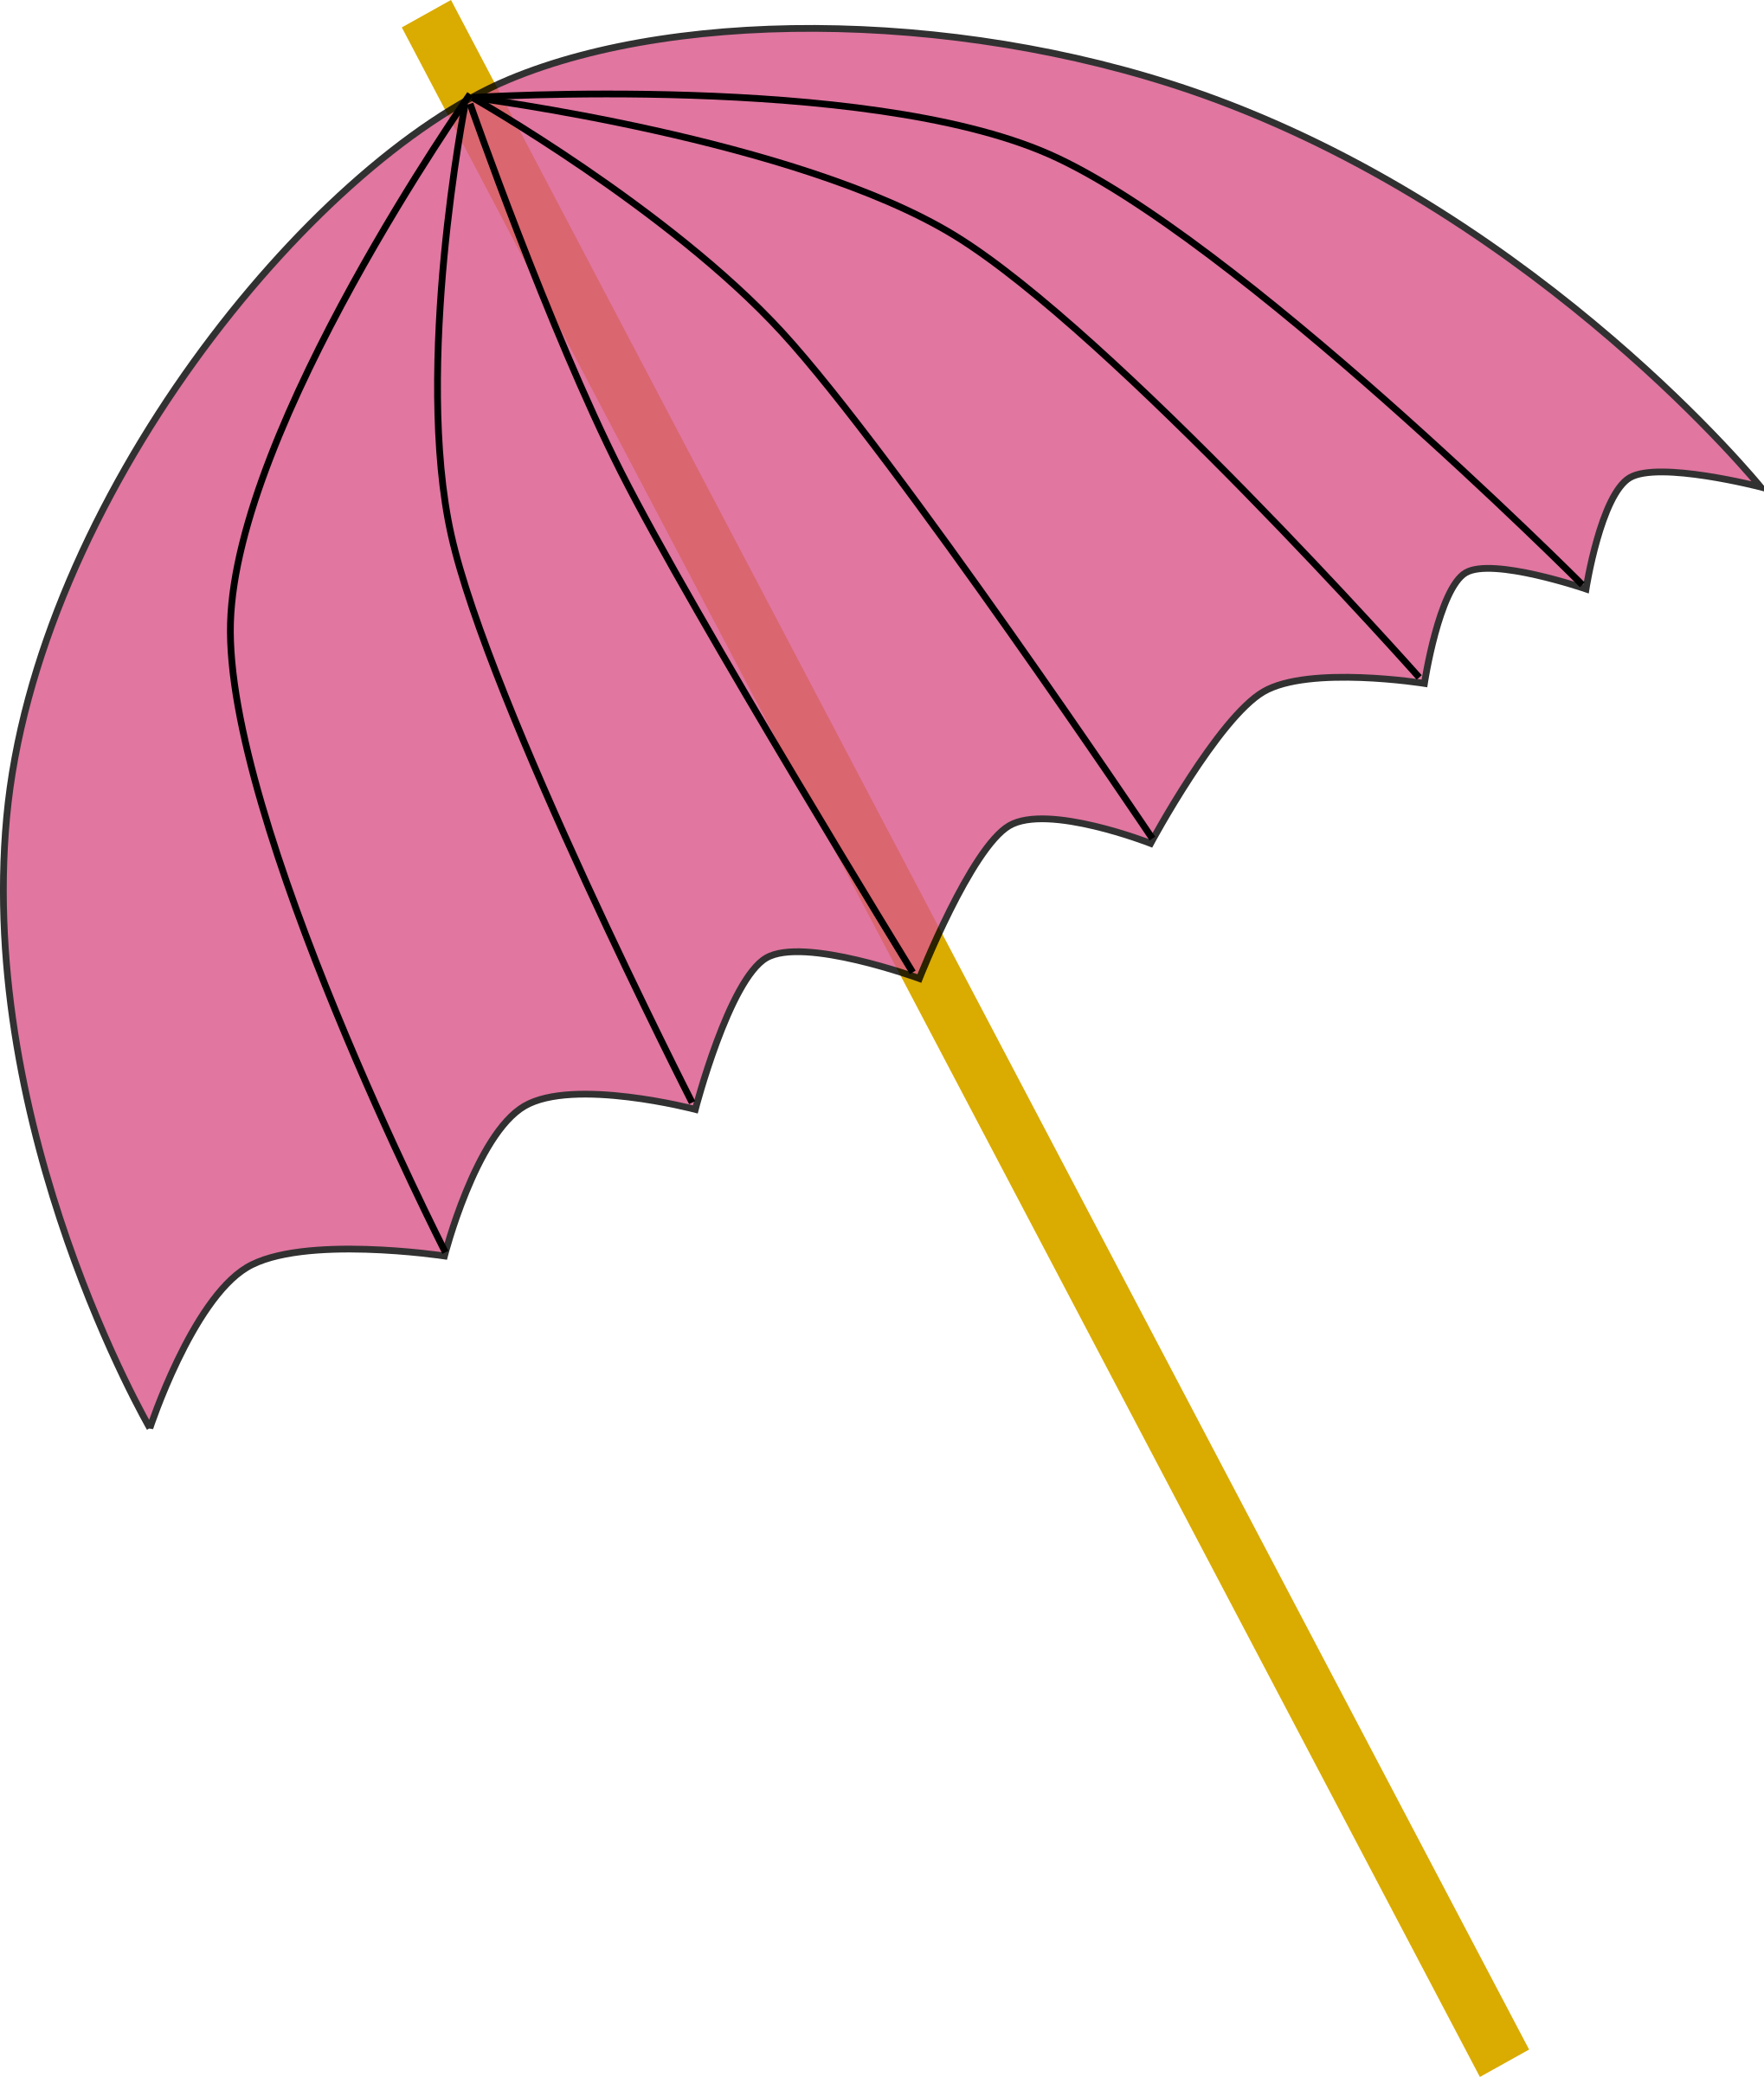 clipart umbrella parasol pink tranparent. Black Bedroom Furniture Sets. Home Design Ideas